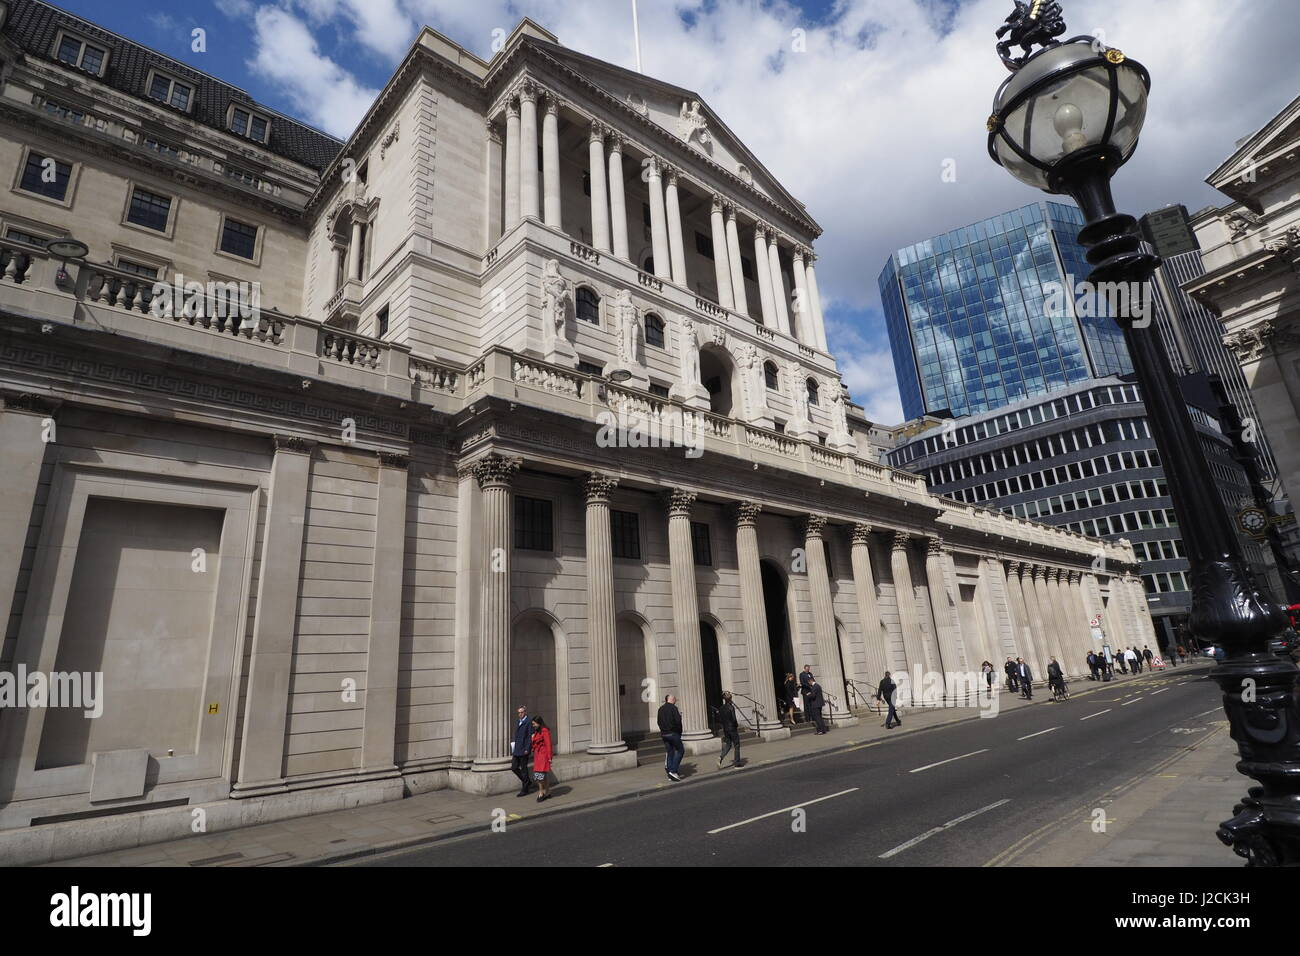 Banque d'Angleterre Photo Stock